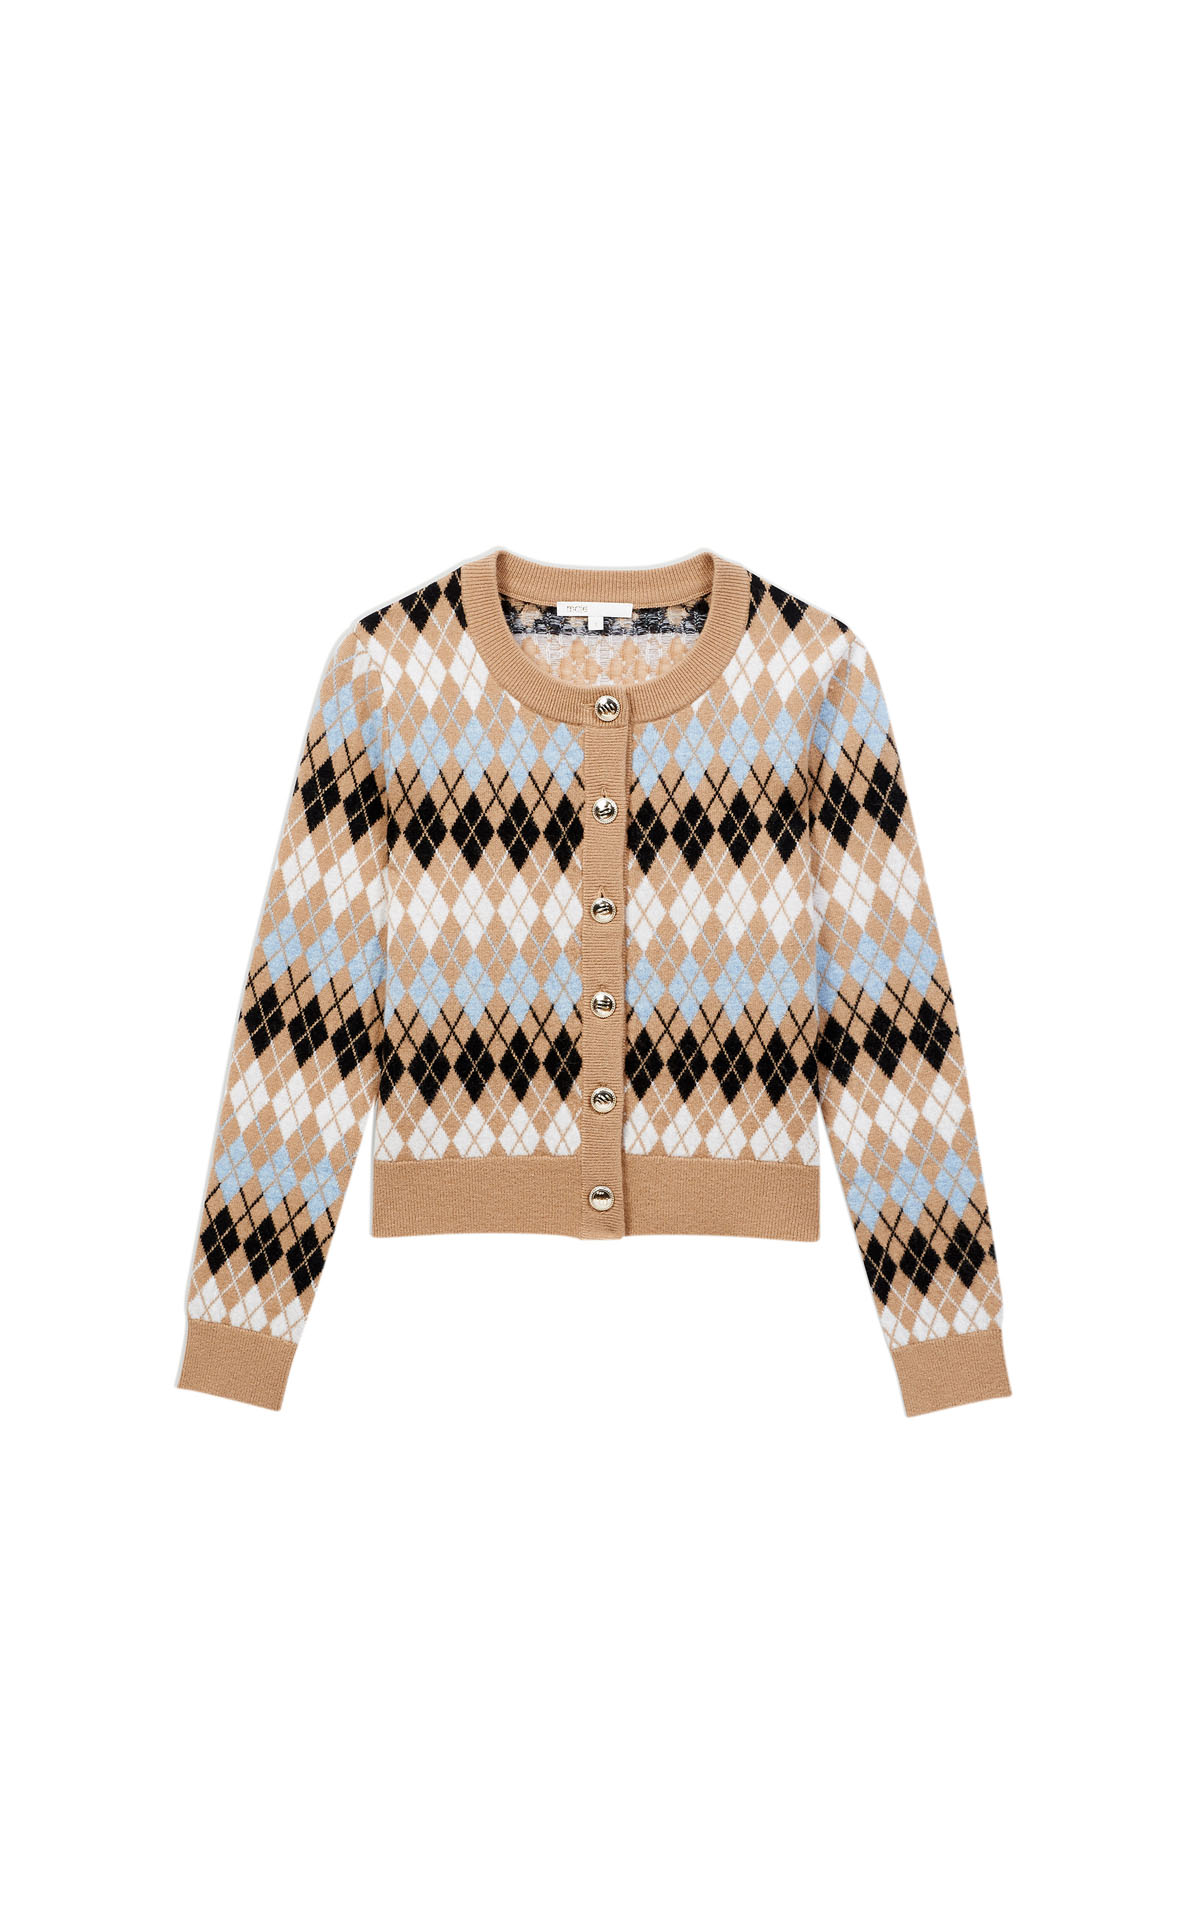 Maje short jacquard cardigan at the Bicester Village Shopping Collection